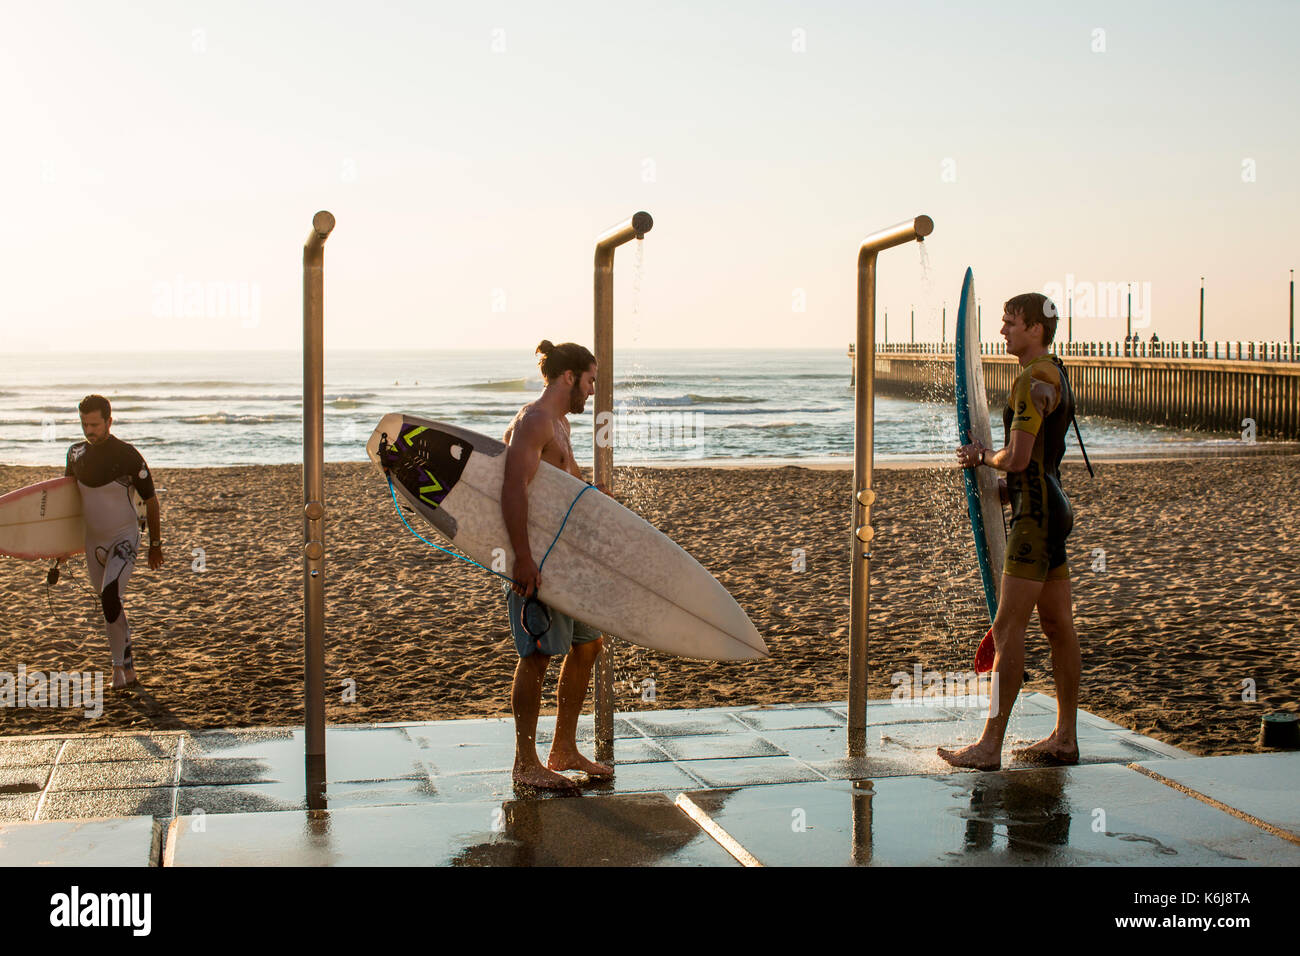 Men washing down surfboards near promenade on Golden Mile in Durban, South Africa - Stock Image